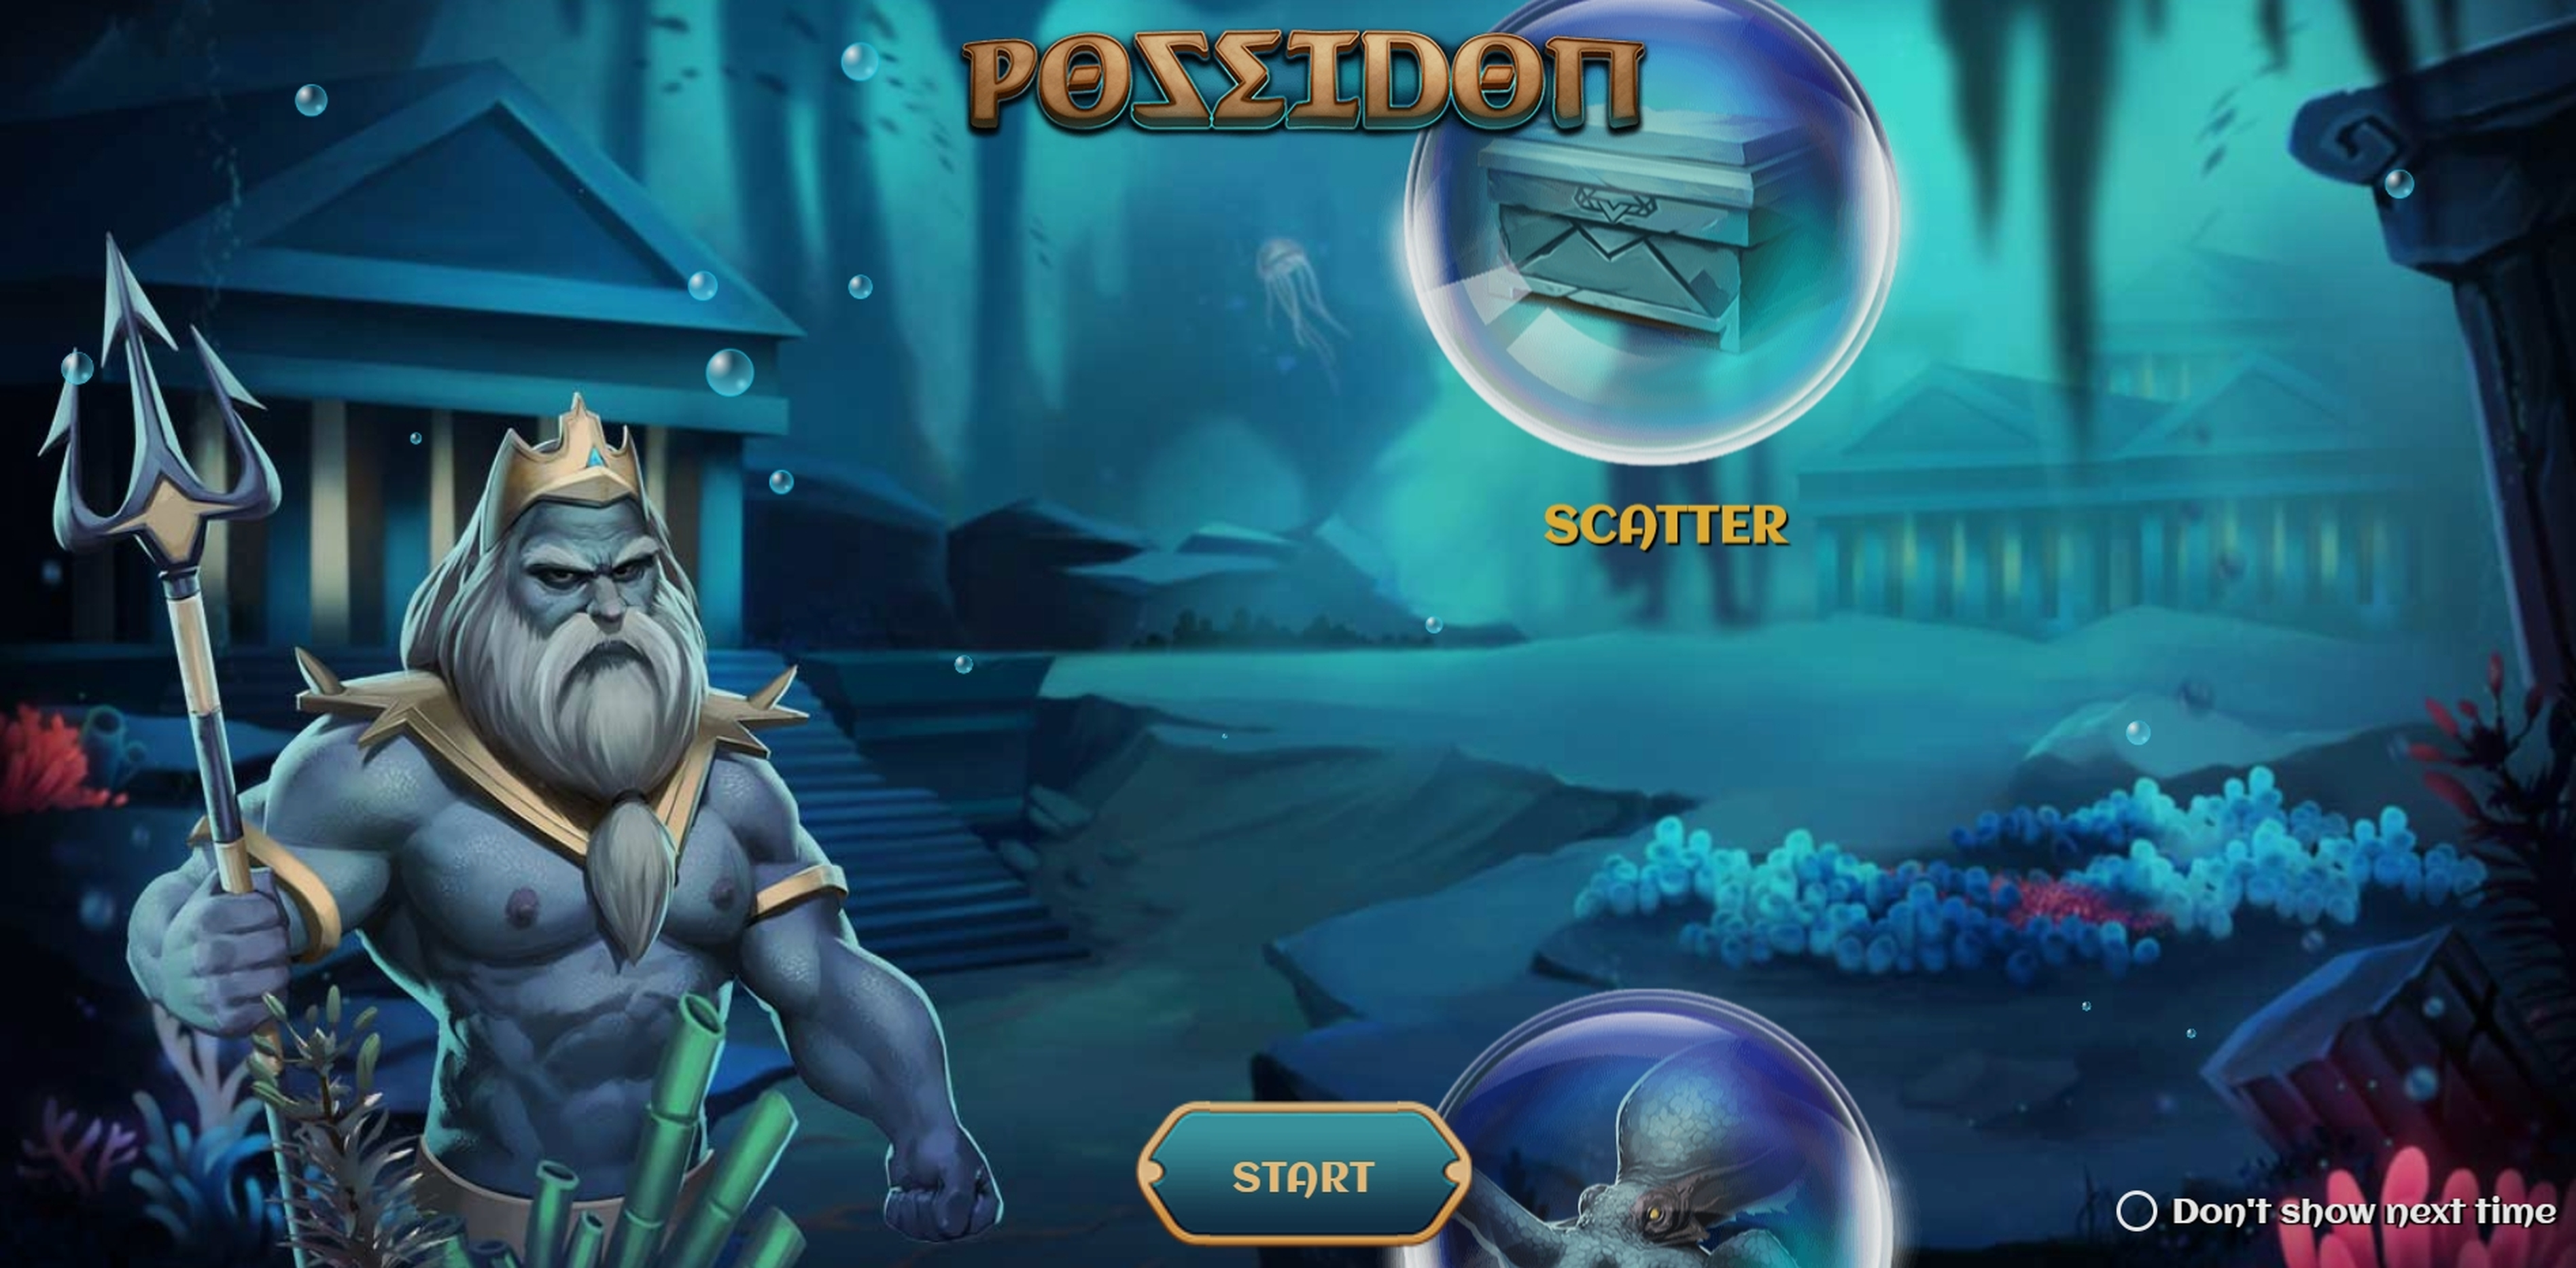 Play Poseidon (Spinmatic) Free Casino Slot Game by Spinmatic